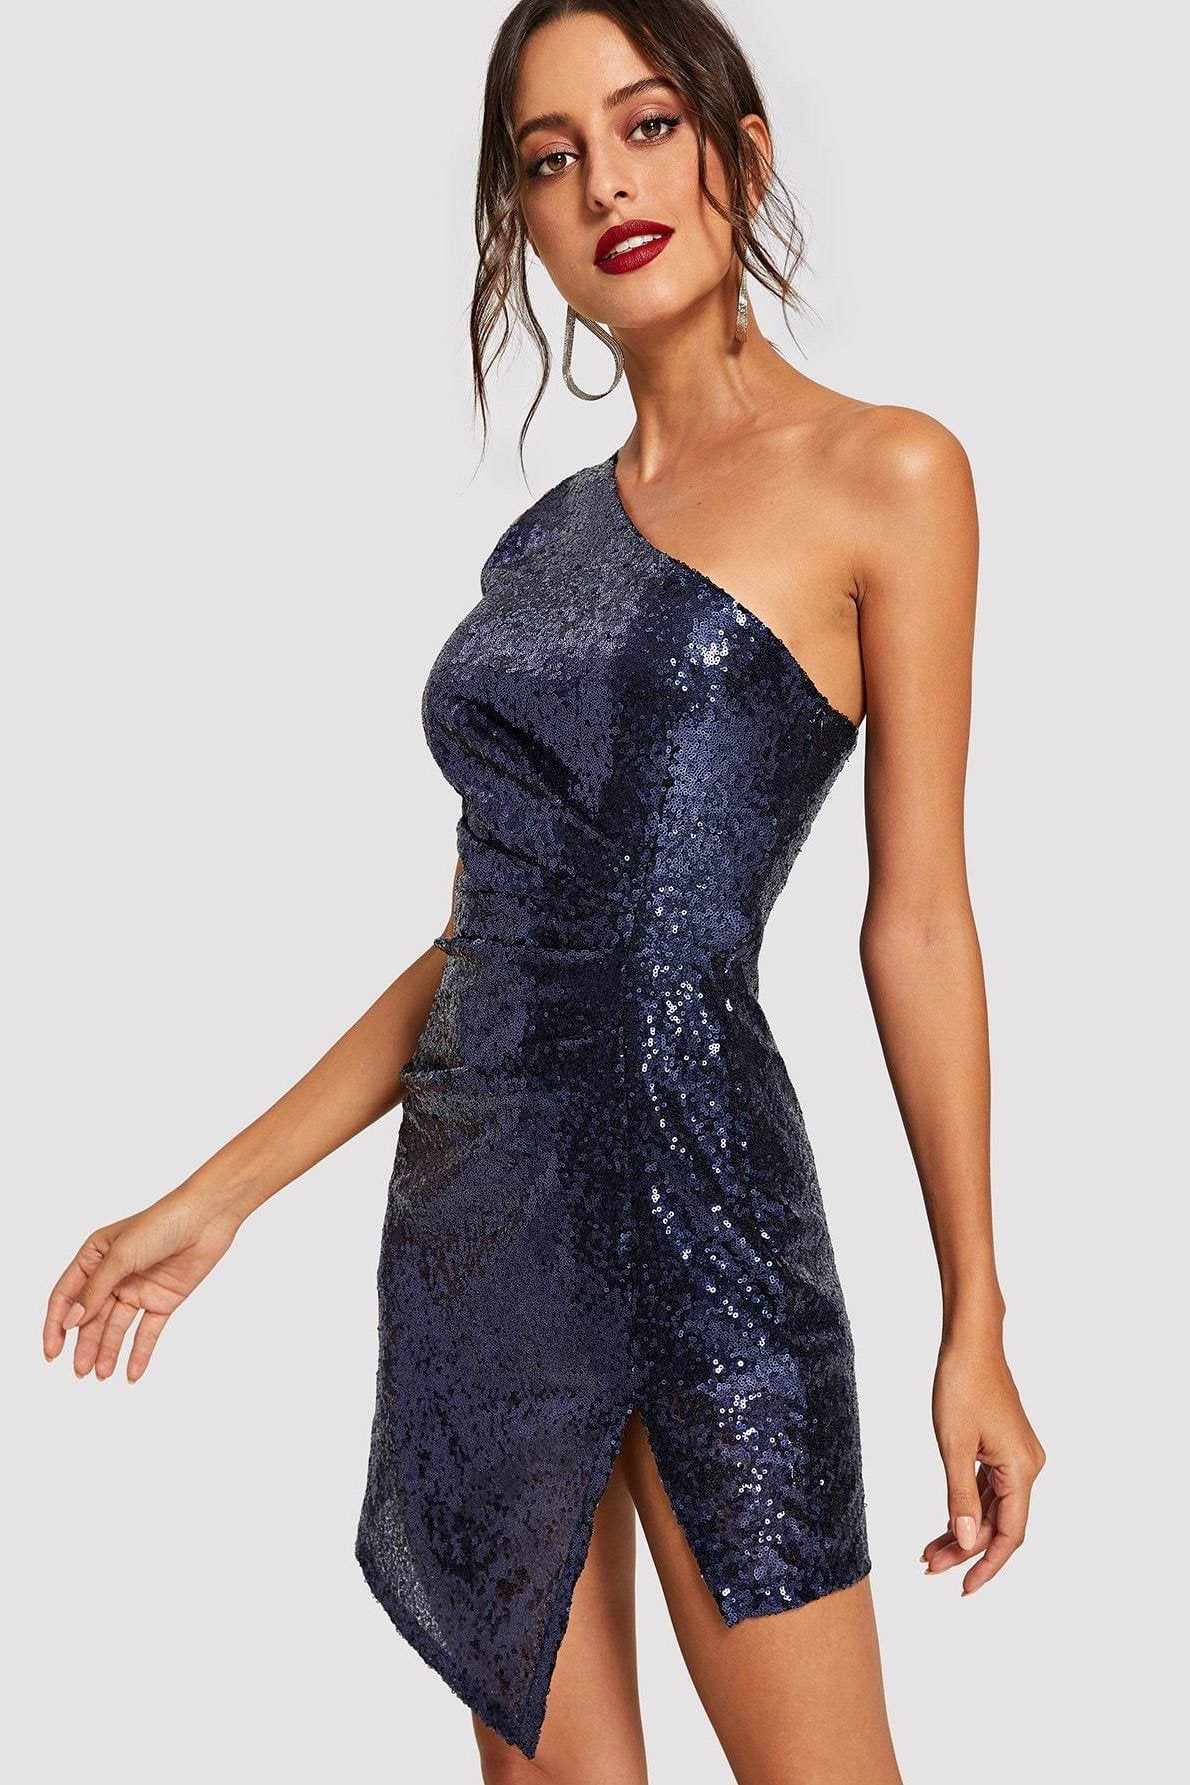 Women's New Years Eve Trousdale Blue Sequin Dress | Love Me Trender